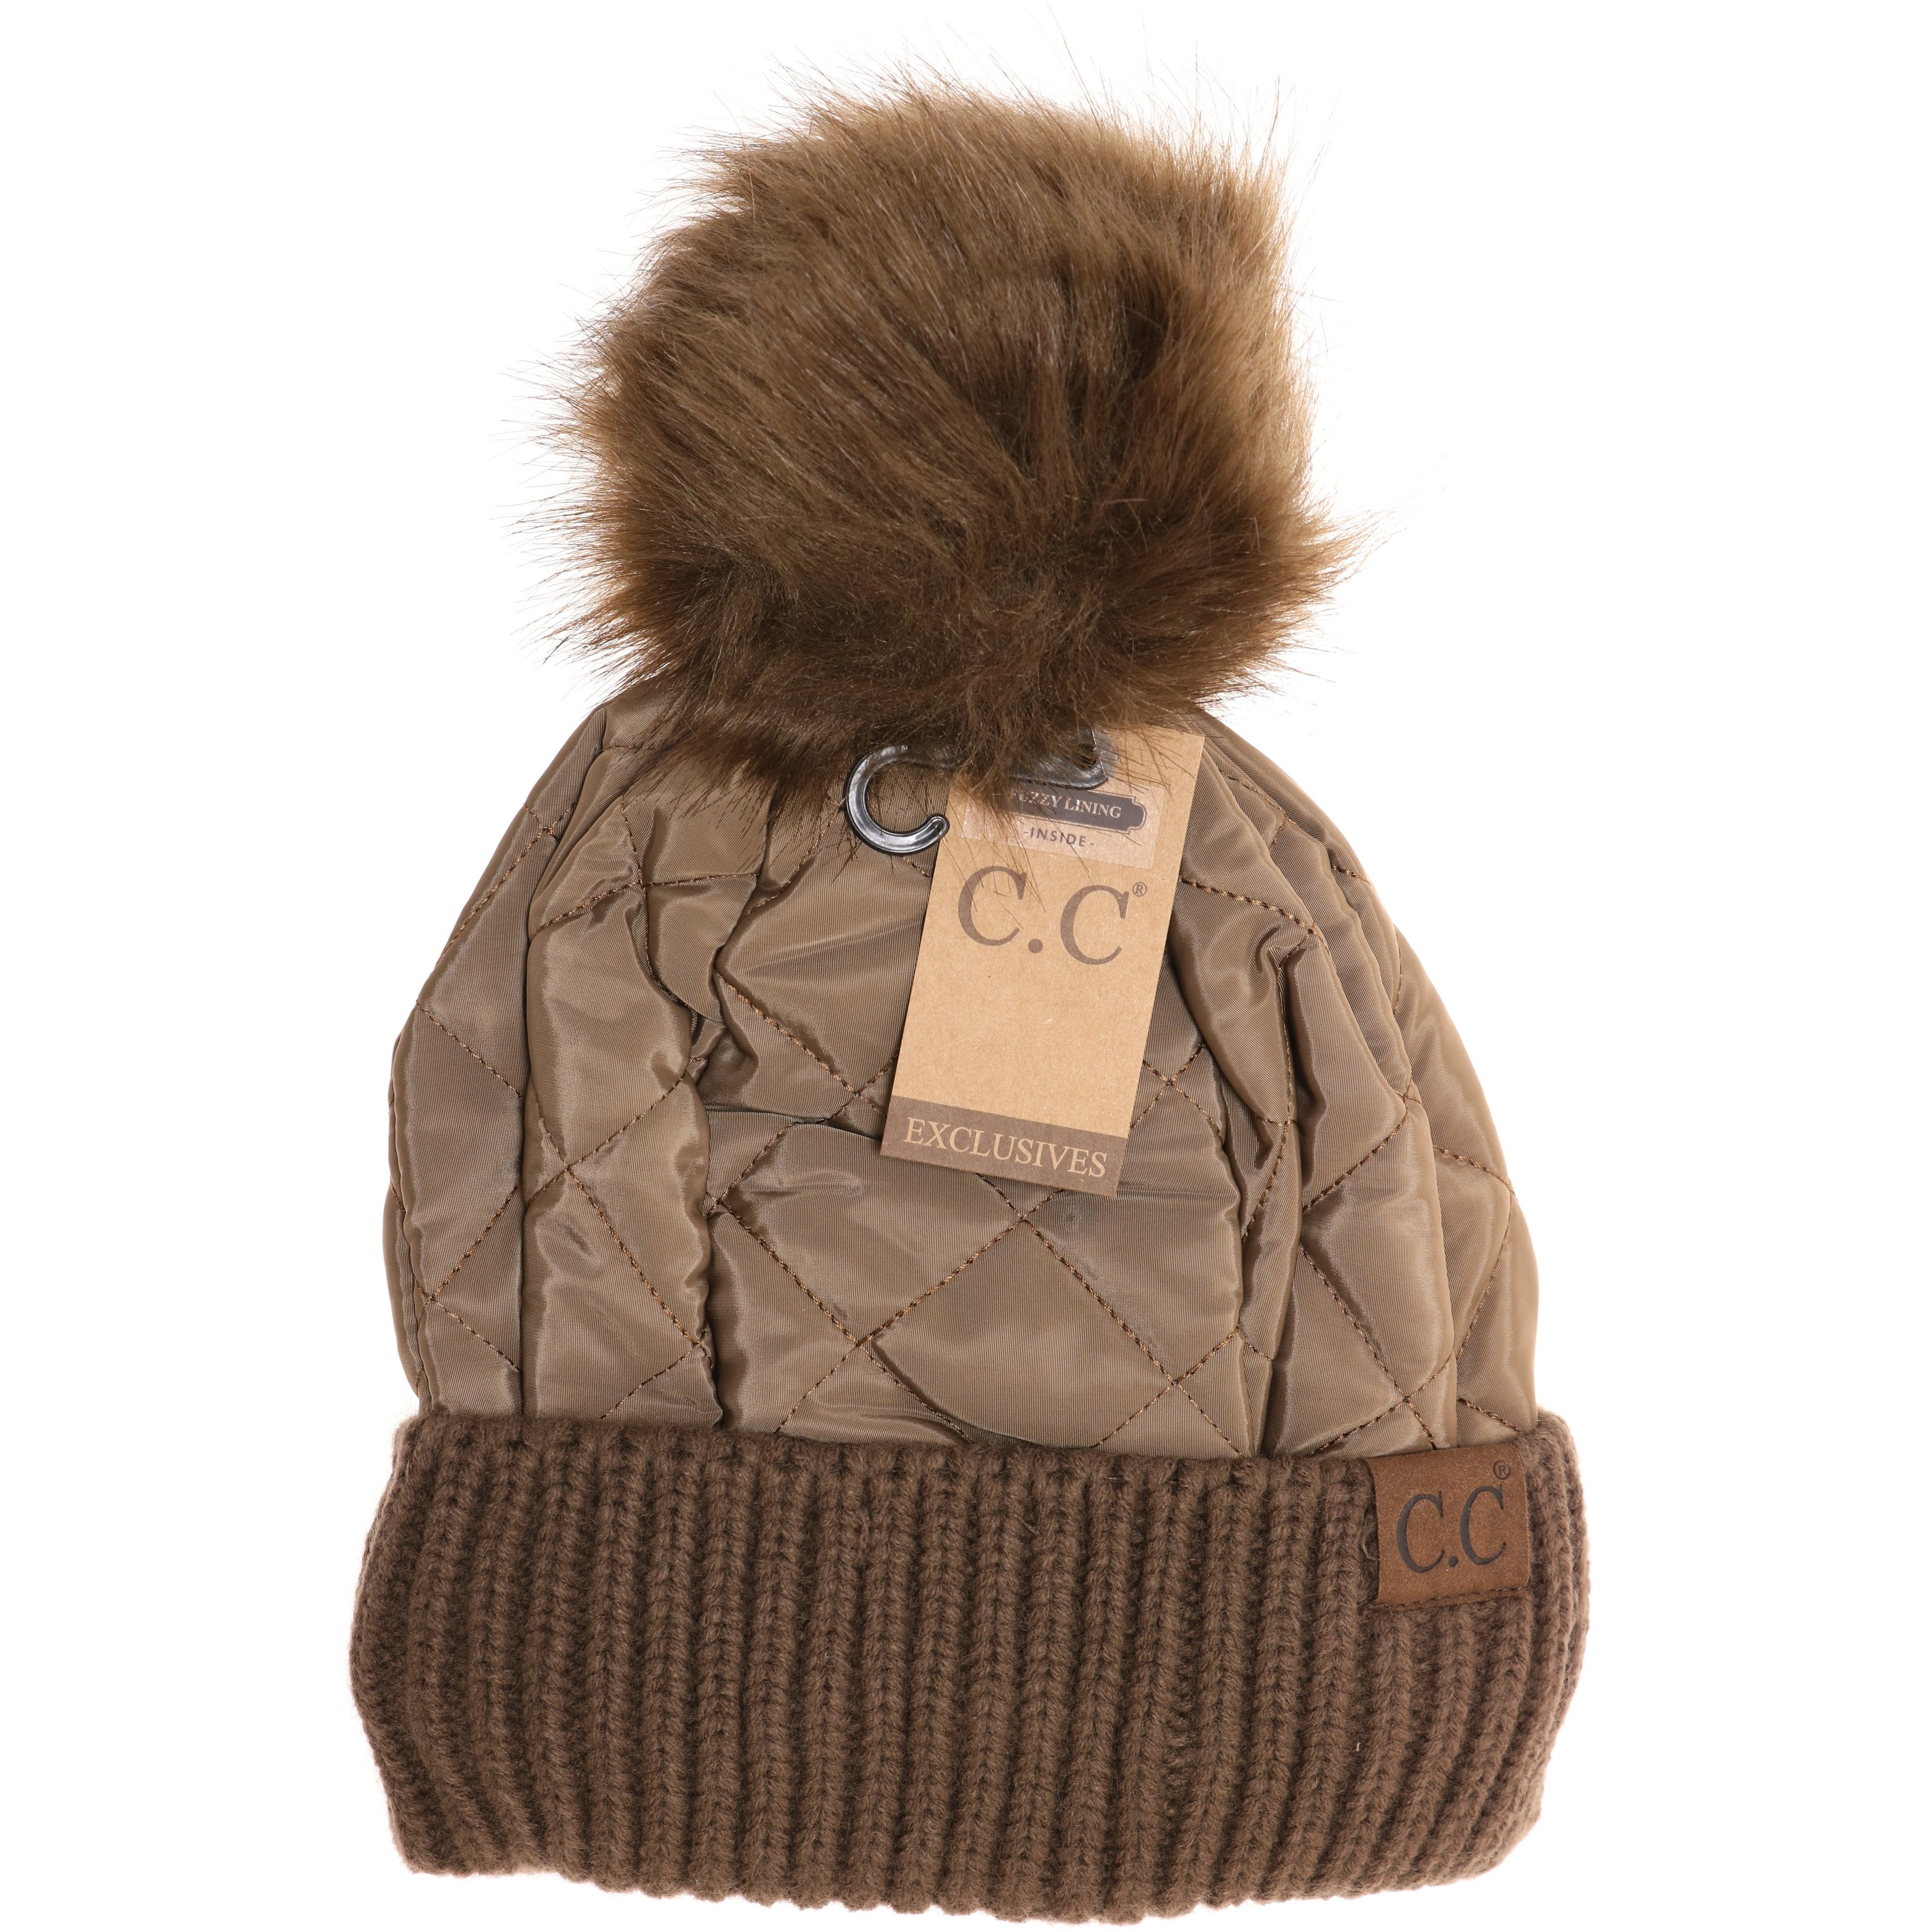 dc66b89cfff Fleece Lined Quilted Puffer CC Pom Beanie HAT1739 - ccbeanie.com